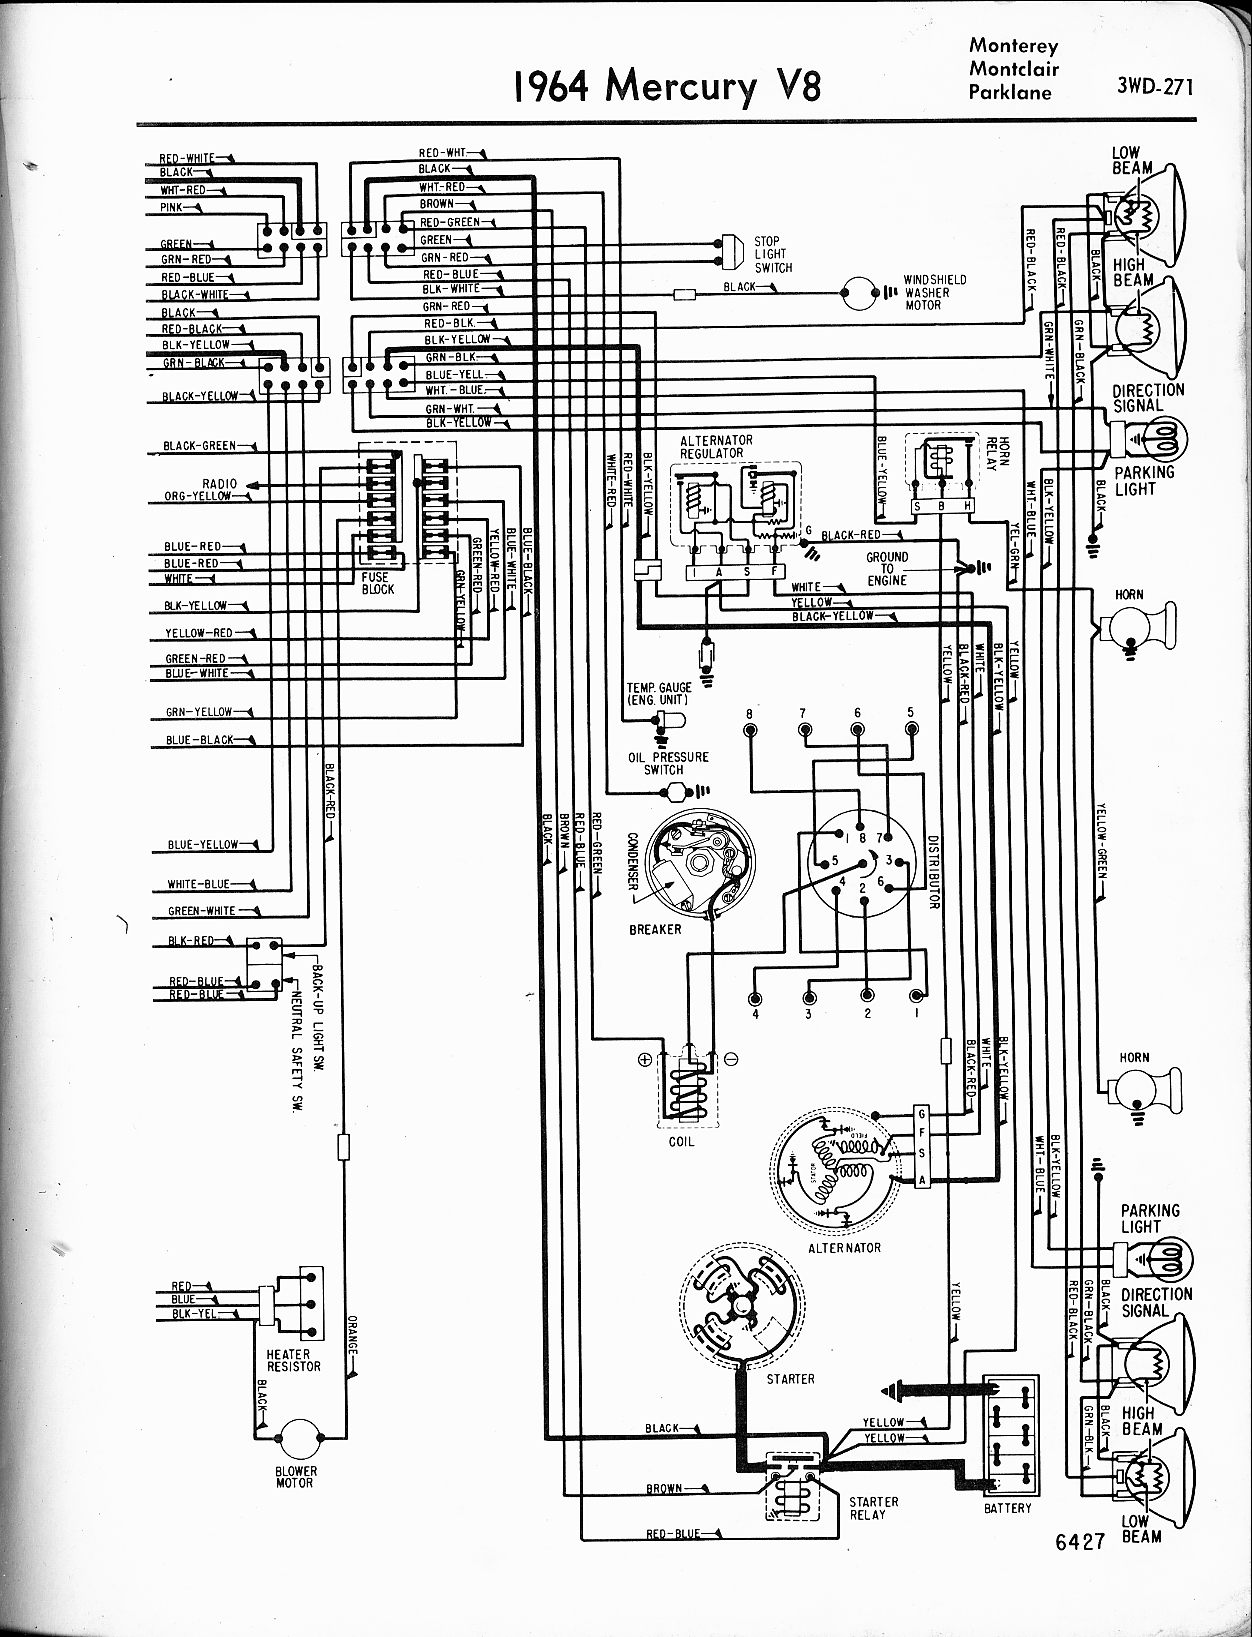 1969 Mercury Cougar Wiring Diagram Diagrams 1968 Harness Easy Power Window Electrical Rh Cytrus Co 1967 Ford Torino